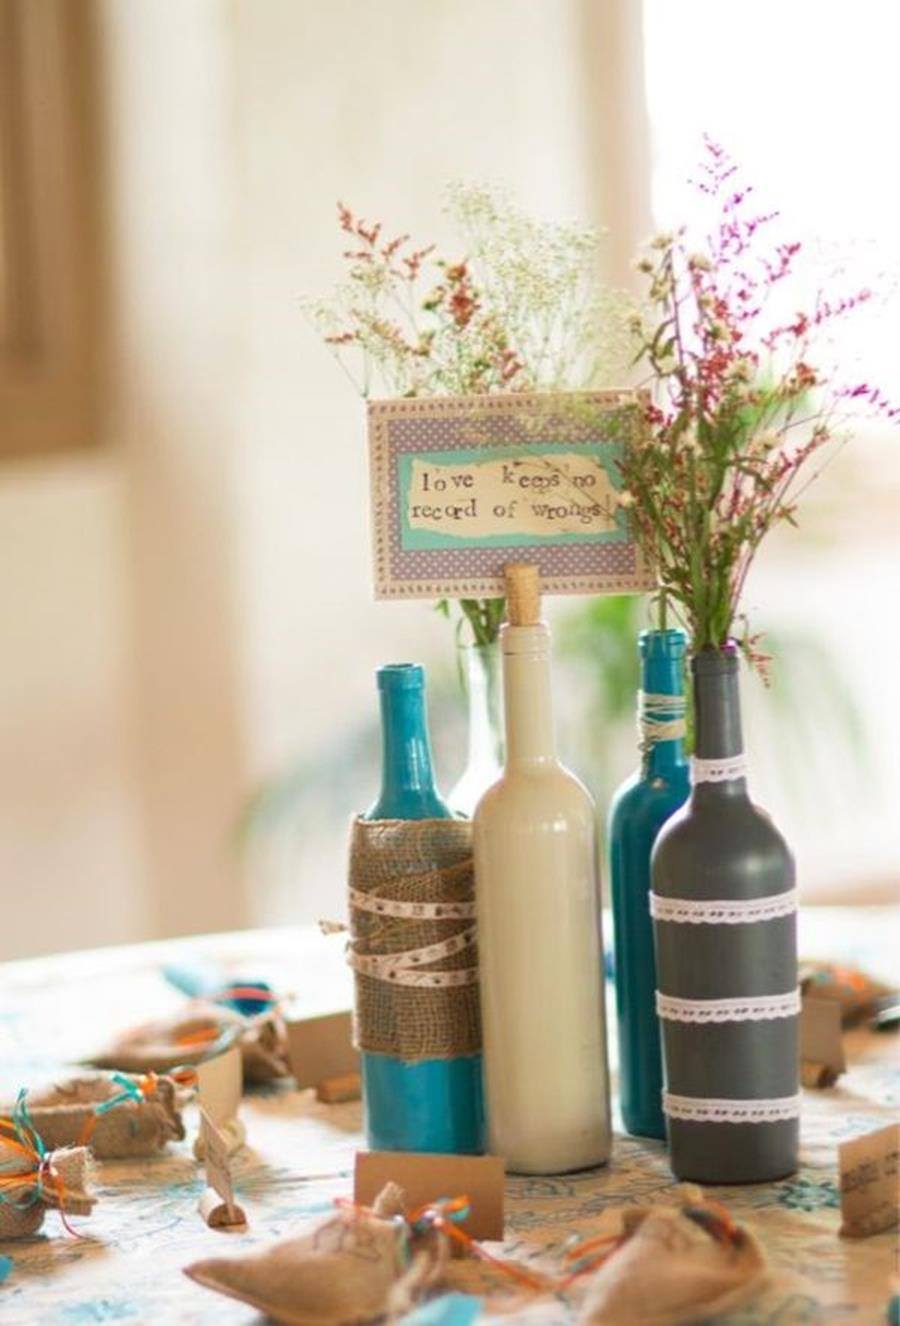 46 DIY Simple but Beautiful Wine Bottle Decor Ideas 5